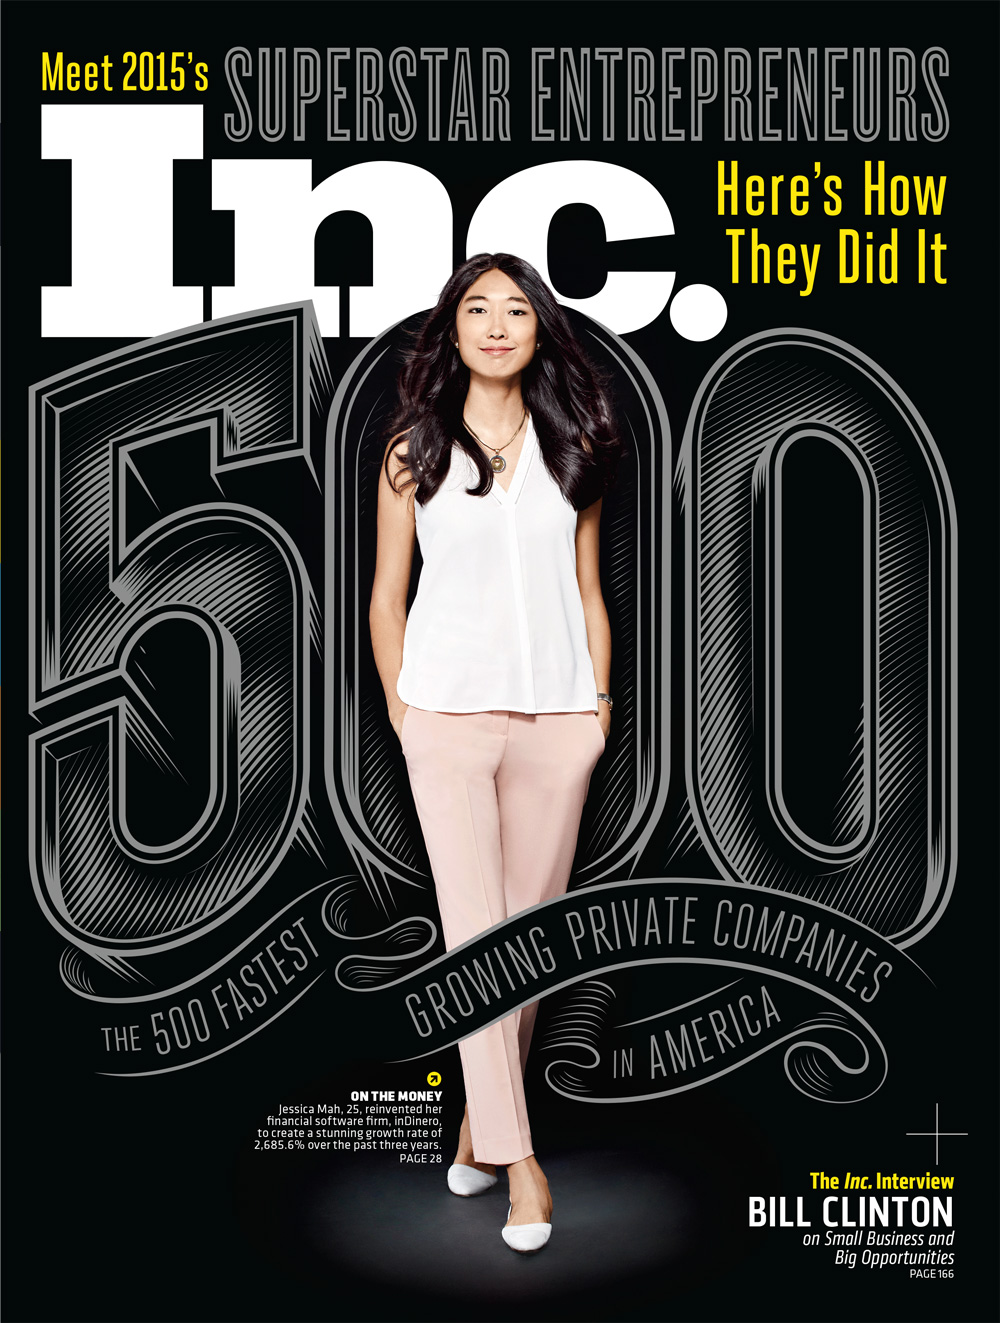 Jessica Mah Age 25 Graces The Cover Of Inc Magazine In 2015 The Blog